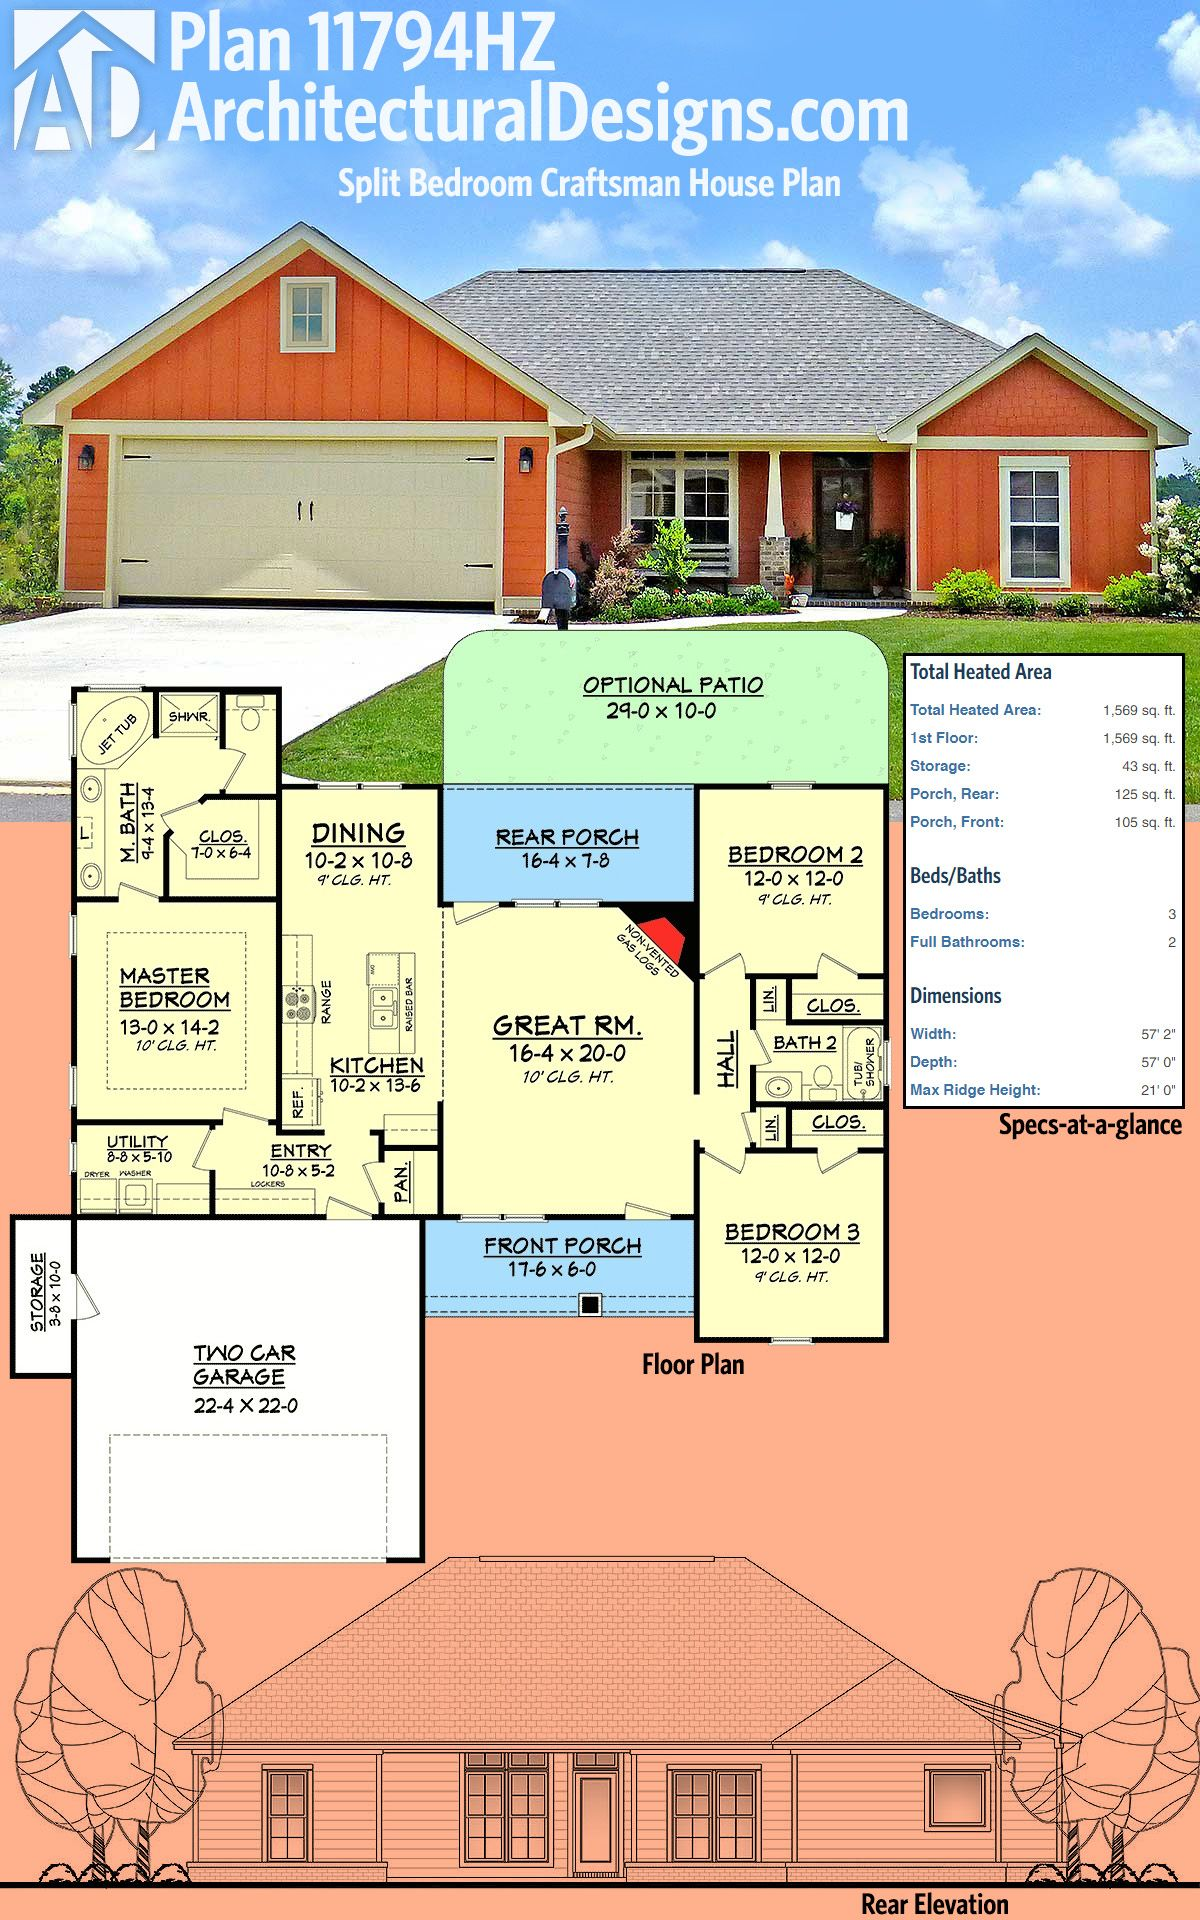 Plan 11794hz Split Bedroom Craftsman House Plan Craftsman House Craftsman House Plans House Plans